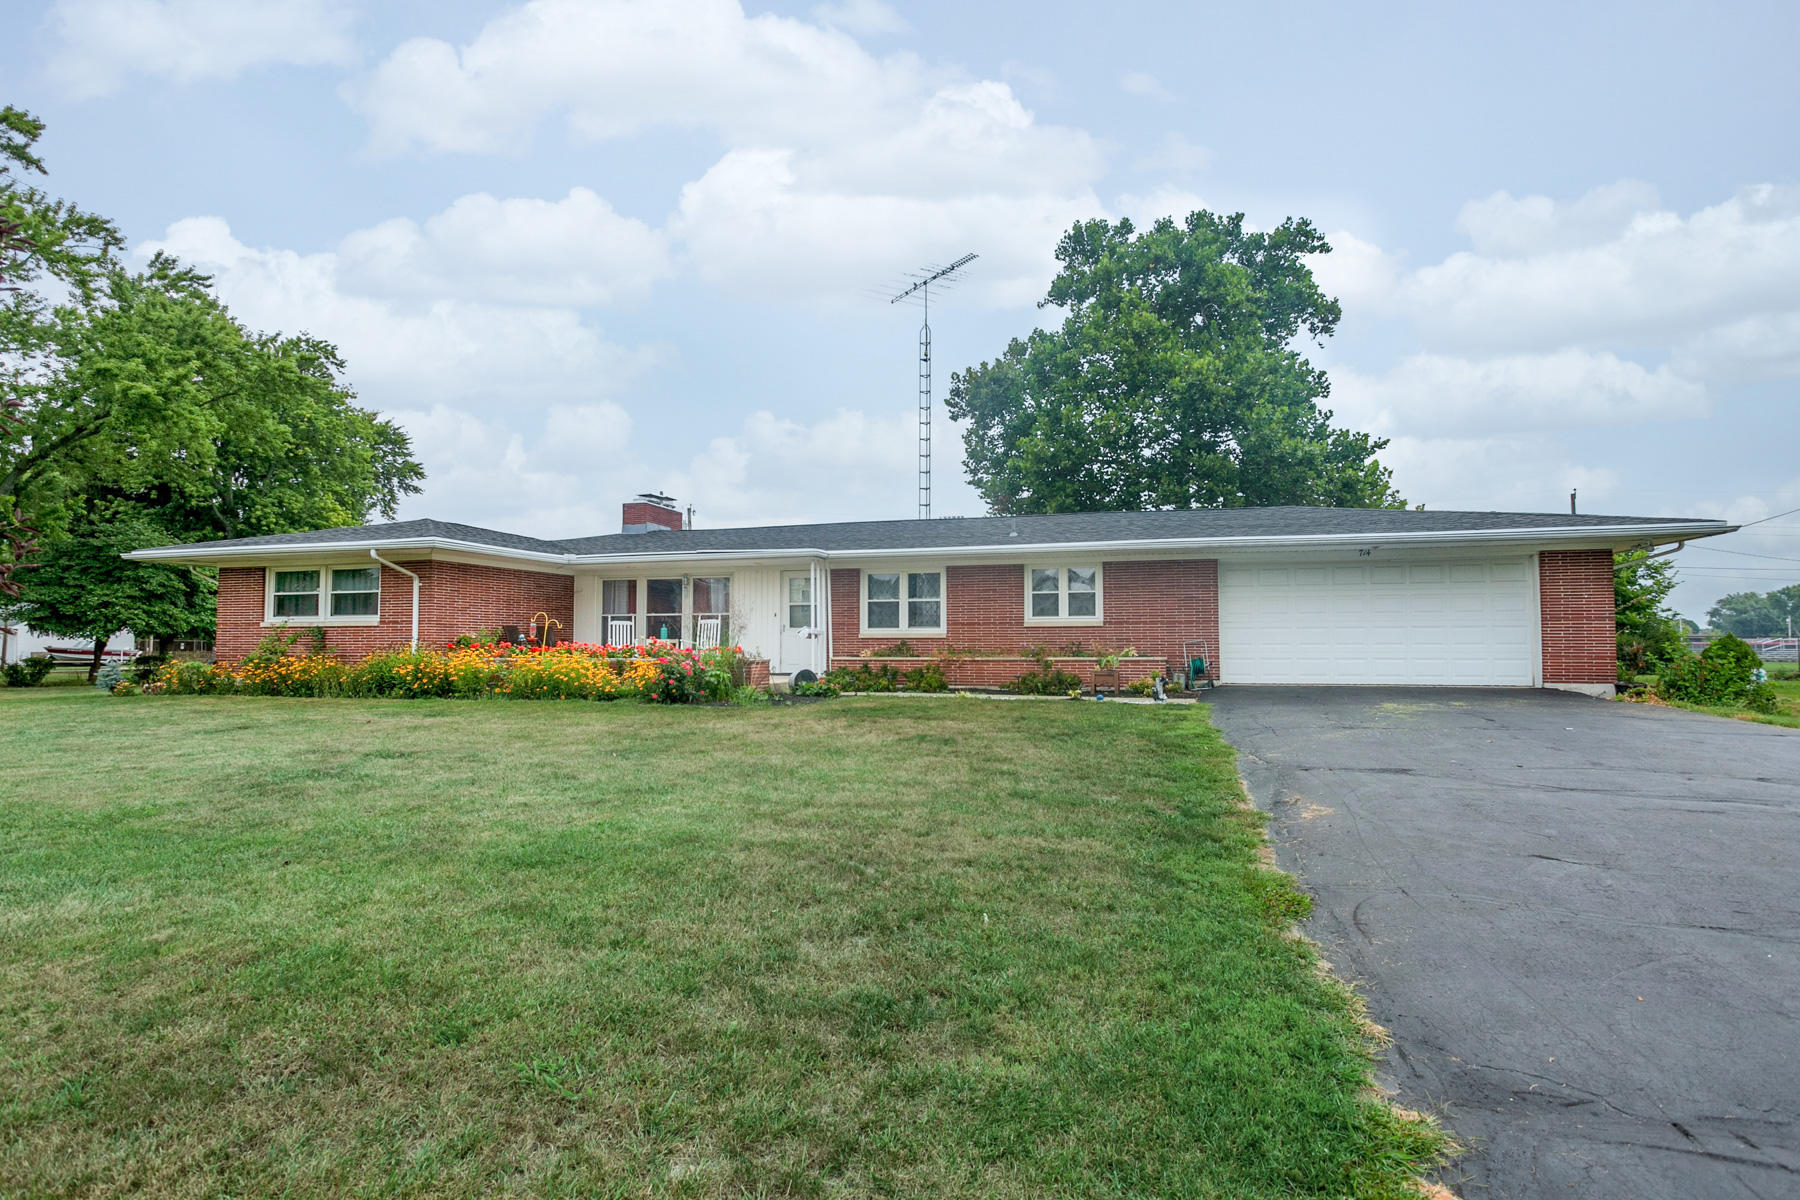 714 E Walnut Street Property Photo - Covington, OH real estate listing